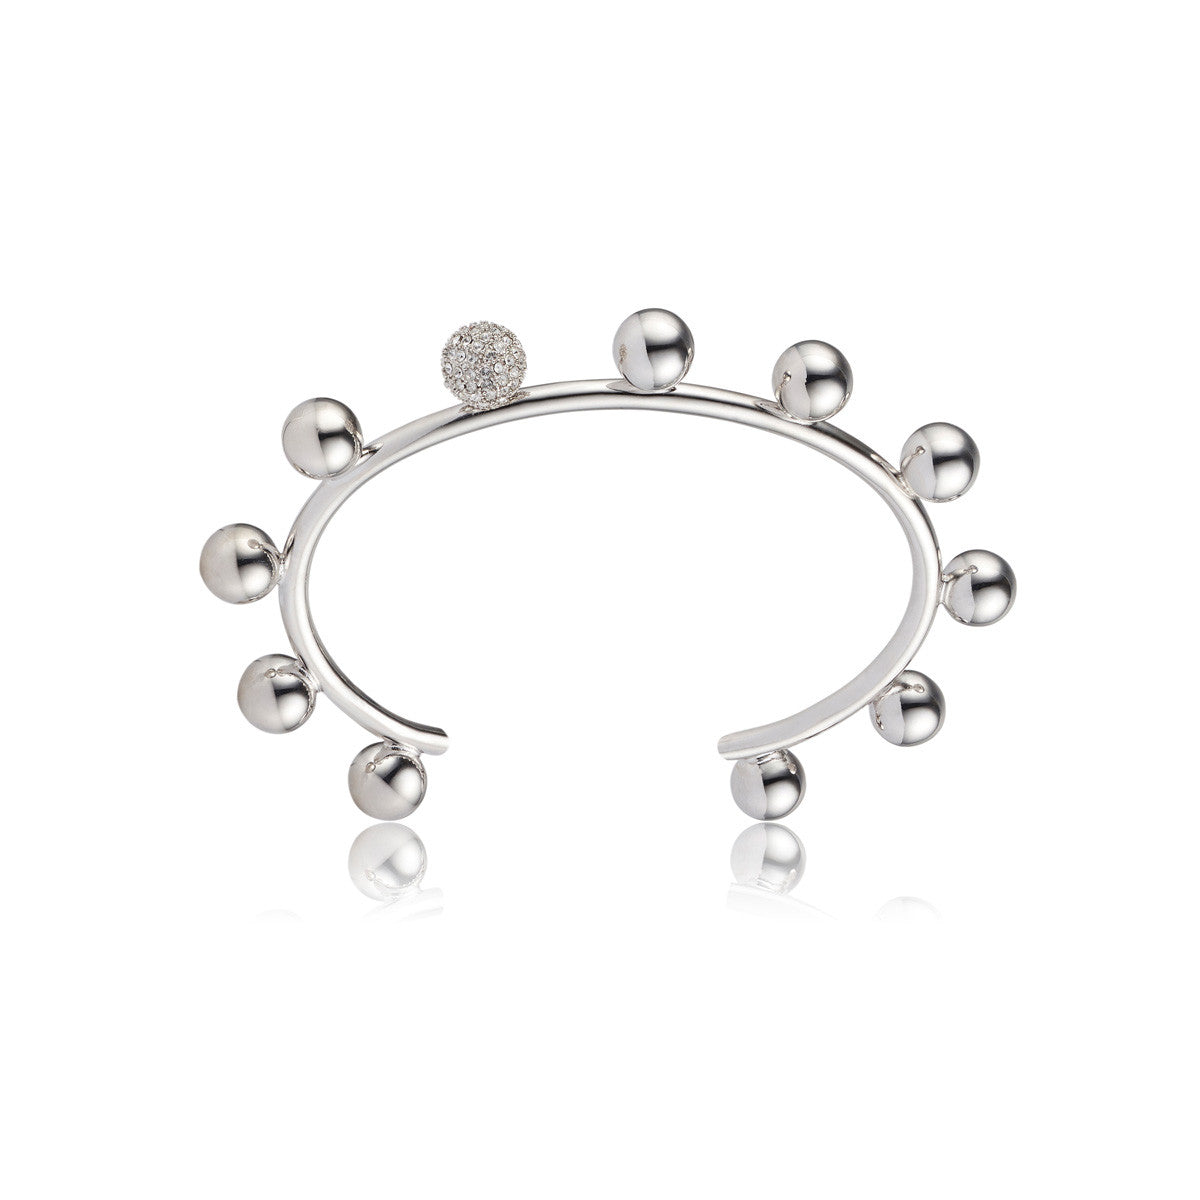 Solid brass, rhodium plated Luceat bangle topped with gleaming spheres and Swarovski® crystal pavè detailing – front